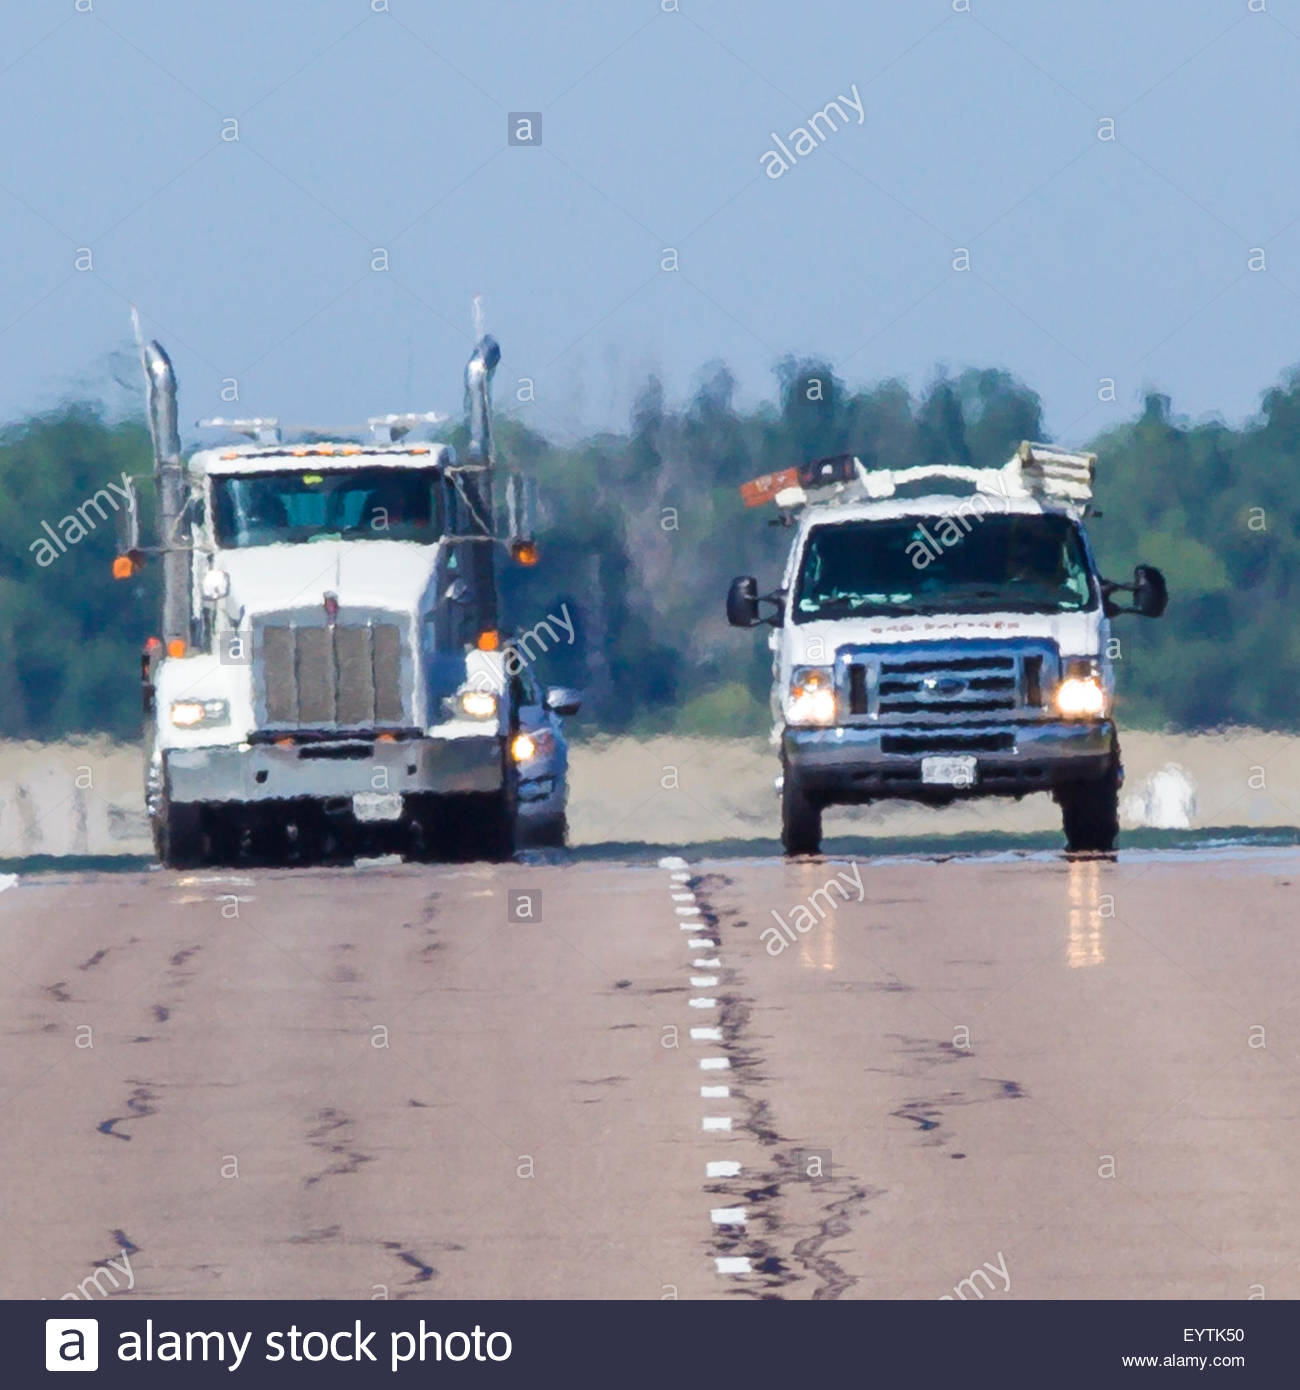 Distortion due to distant heat shimmer on a hot 35 degree Celsius summer day on Highway 407 near Toronto Ontario - Stock Image